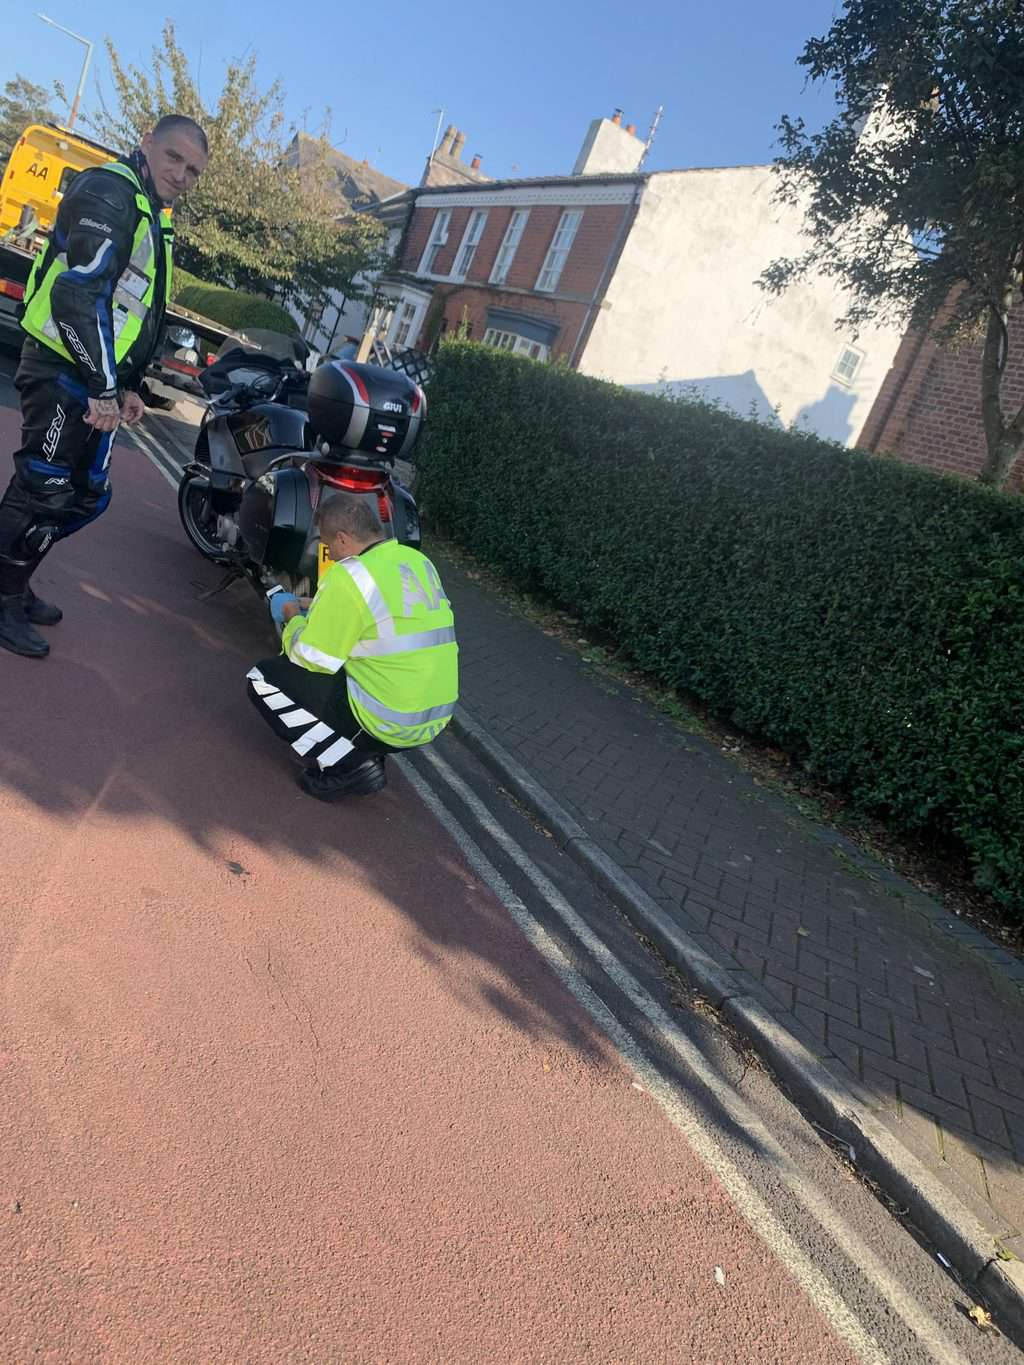 Bloody Hell! Blood Bike on Urgent Mission Struck by Audi in Lytham